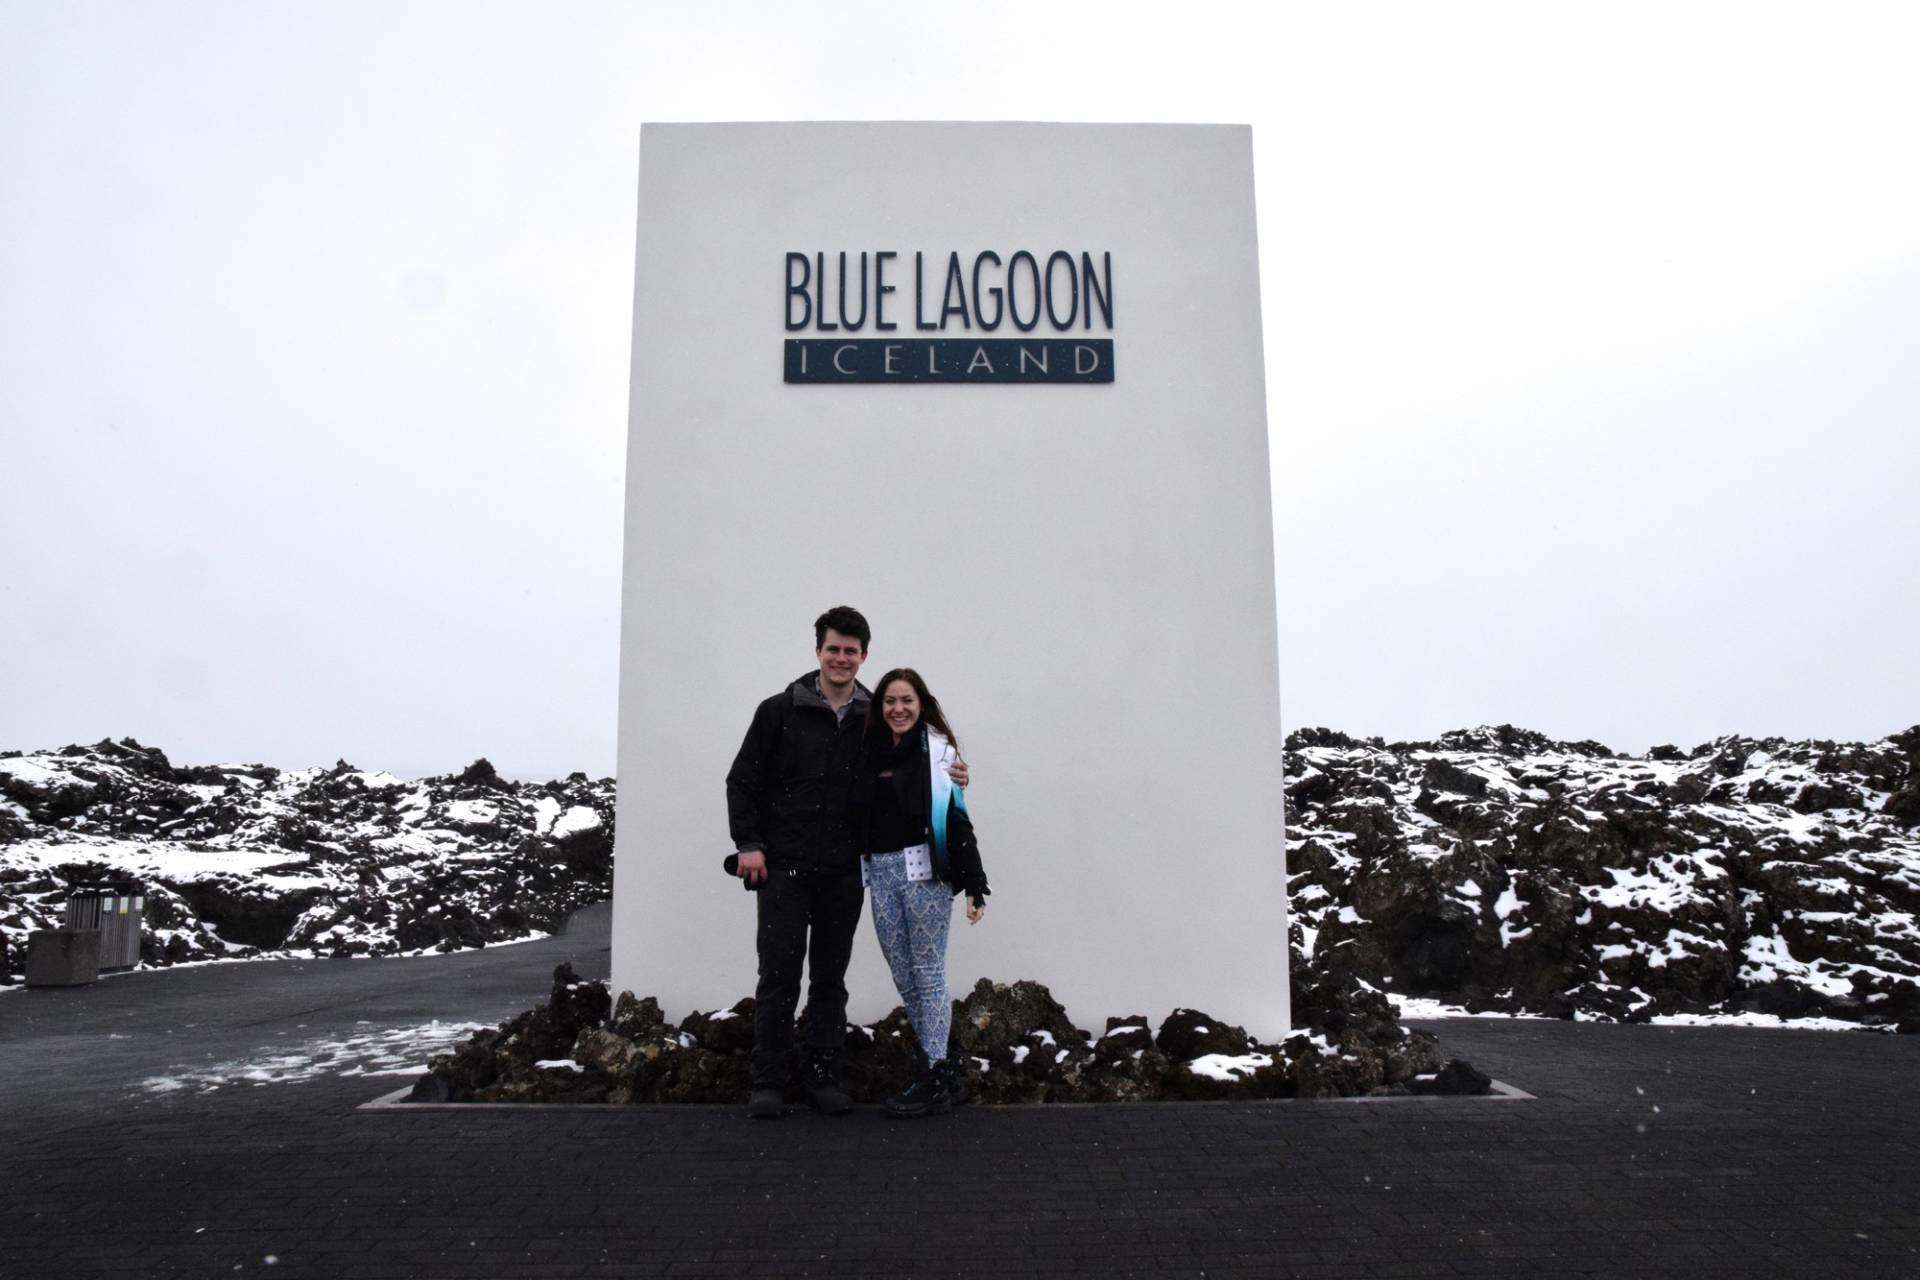 Things To Know Before Visiting The Blue Lagoon Girl Vs Globe - 10 things to know about icelands blue lagoon